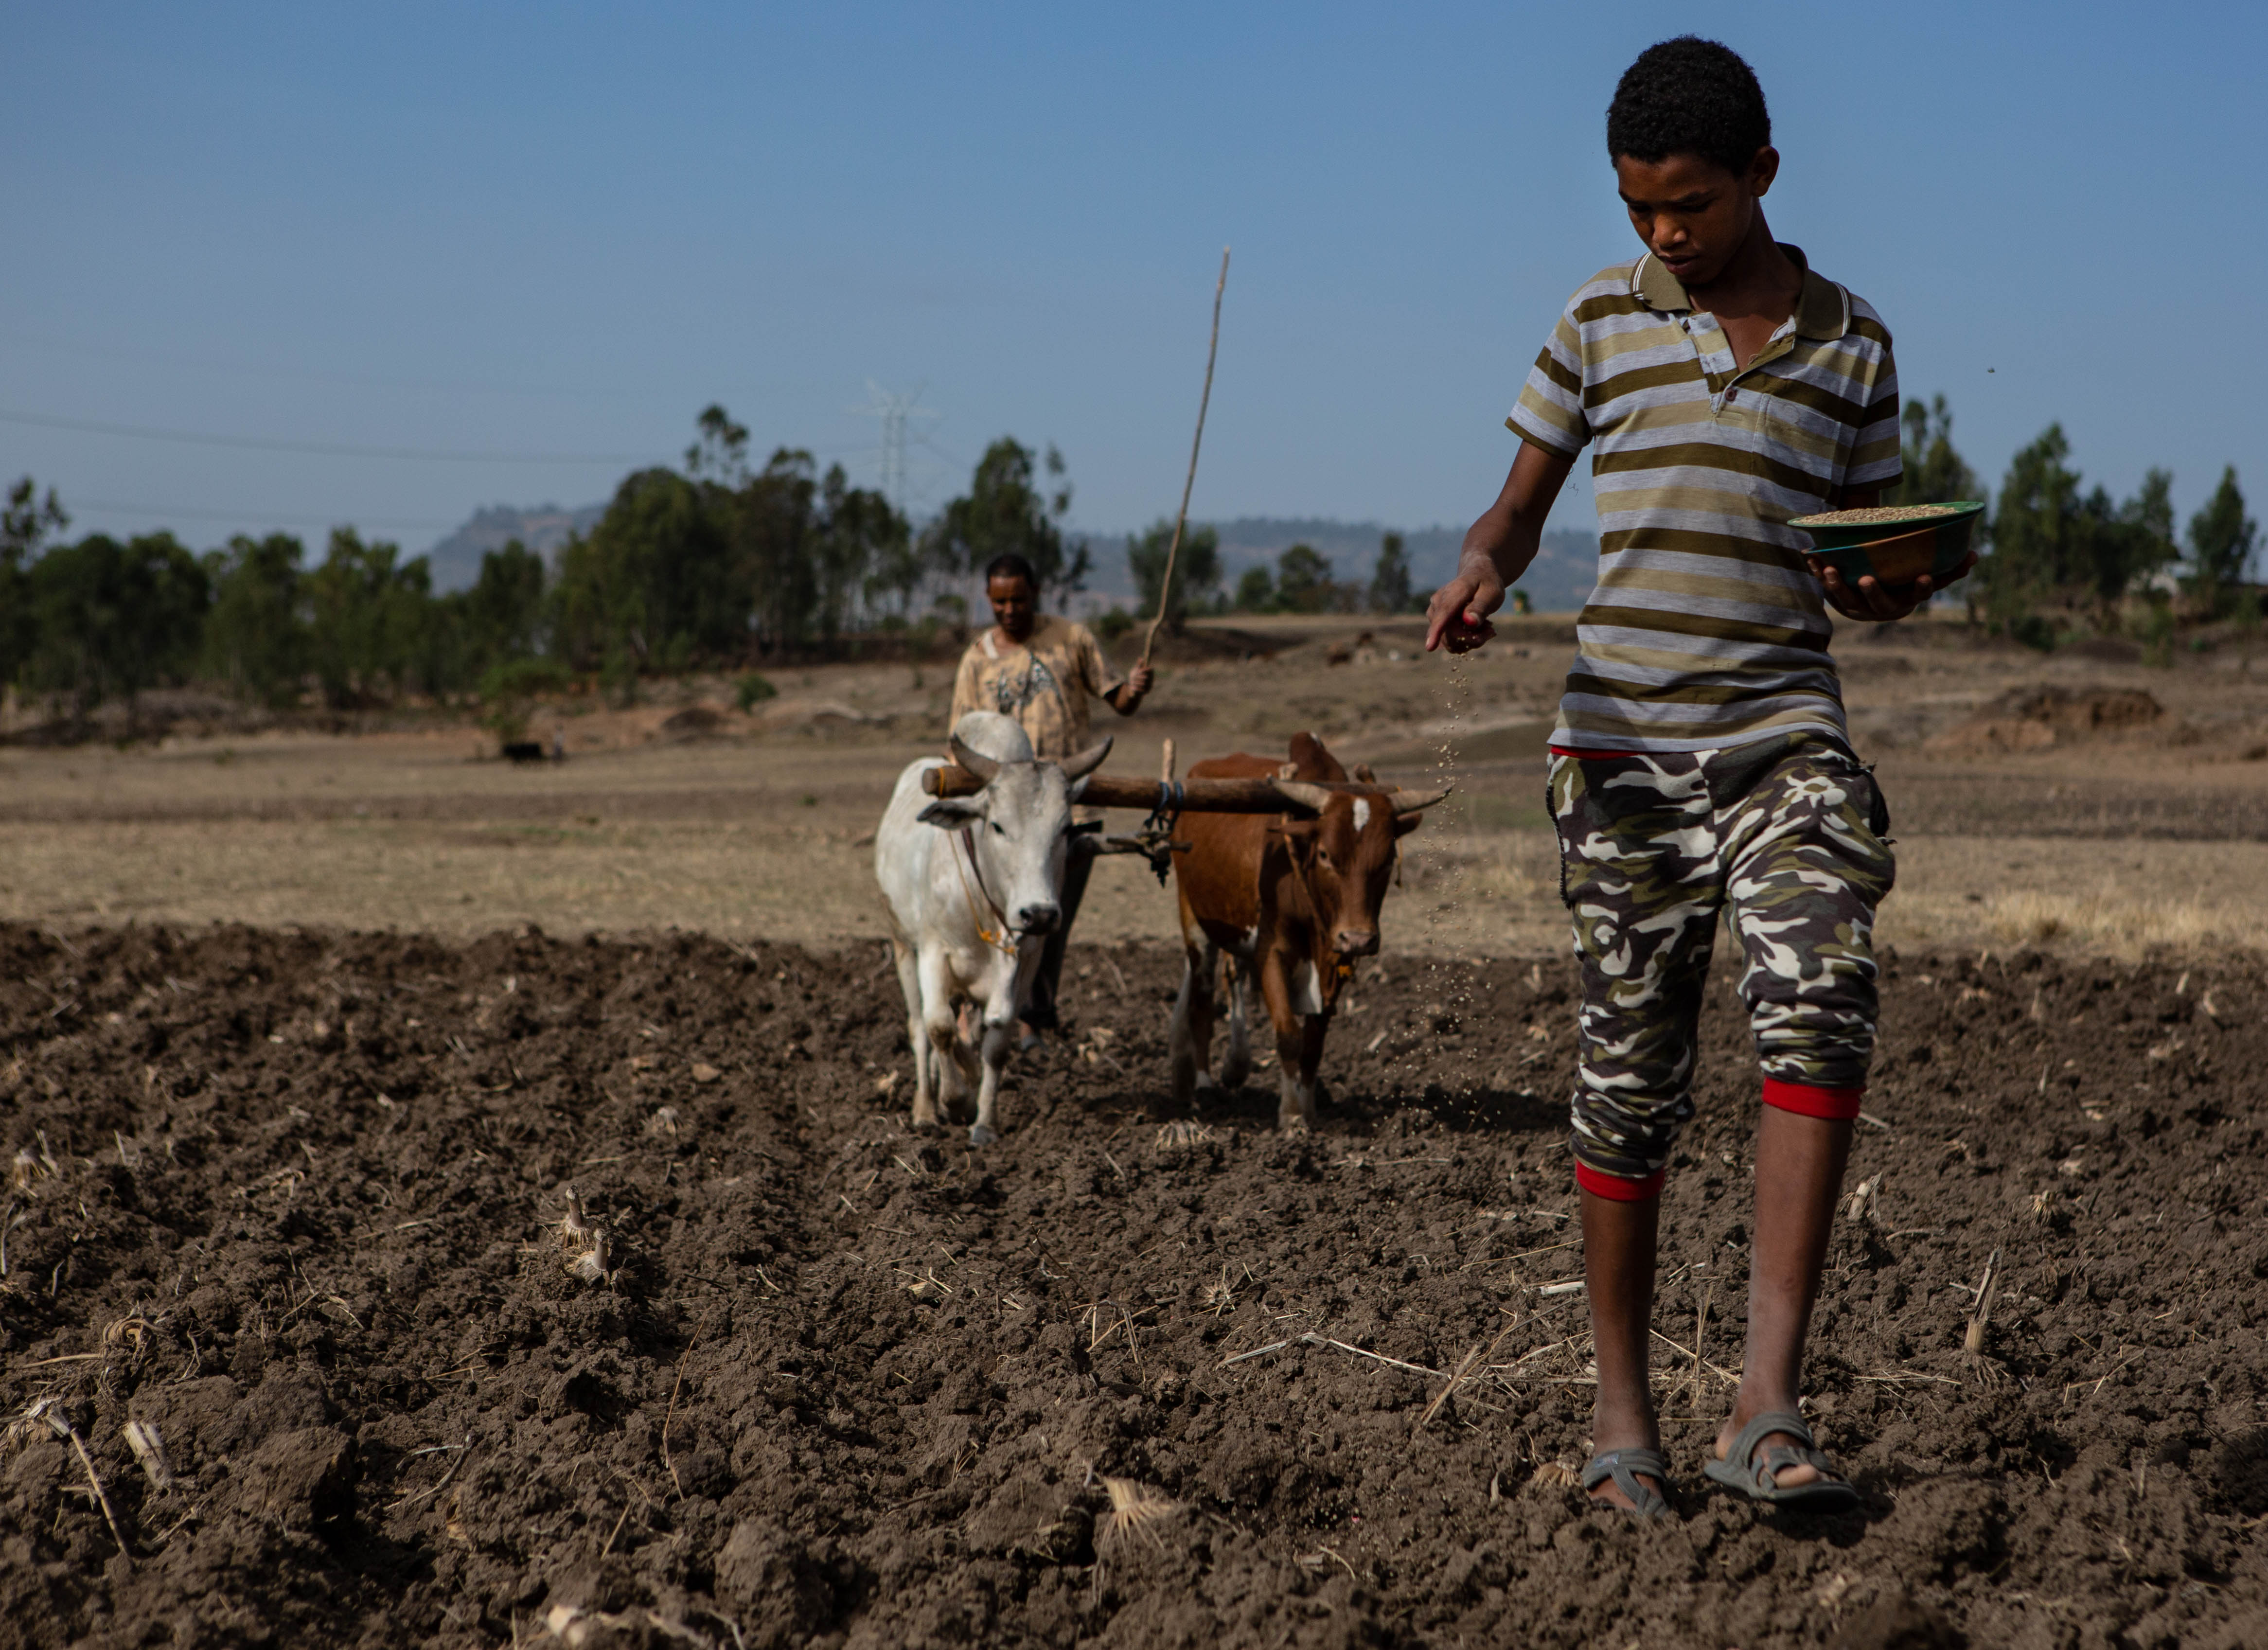 A young Ethiopian manin a striped colored shirt, camouflage-patterned capris, and black sandals walks towards the camera while dropping maize seeds into the churned soil before the plow. Another man follows in the background, driving a two-oxen plow. The landscape beyond the field looks dry and brown.  Photographer Jacquelyn Turner, ACToday/IRI.